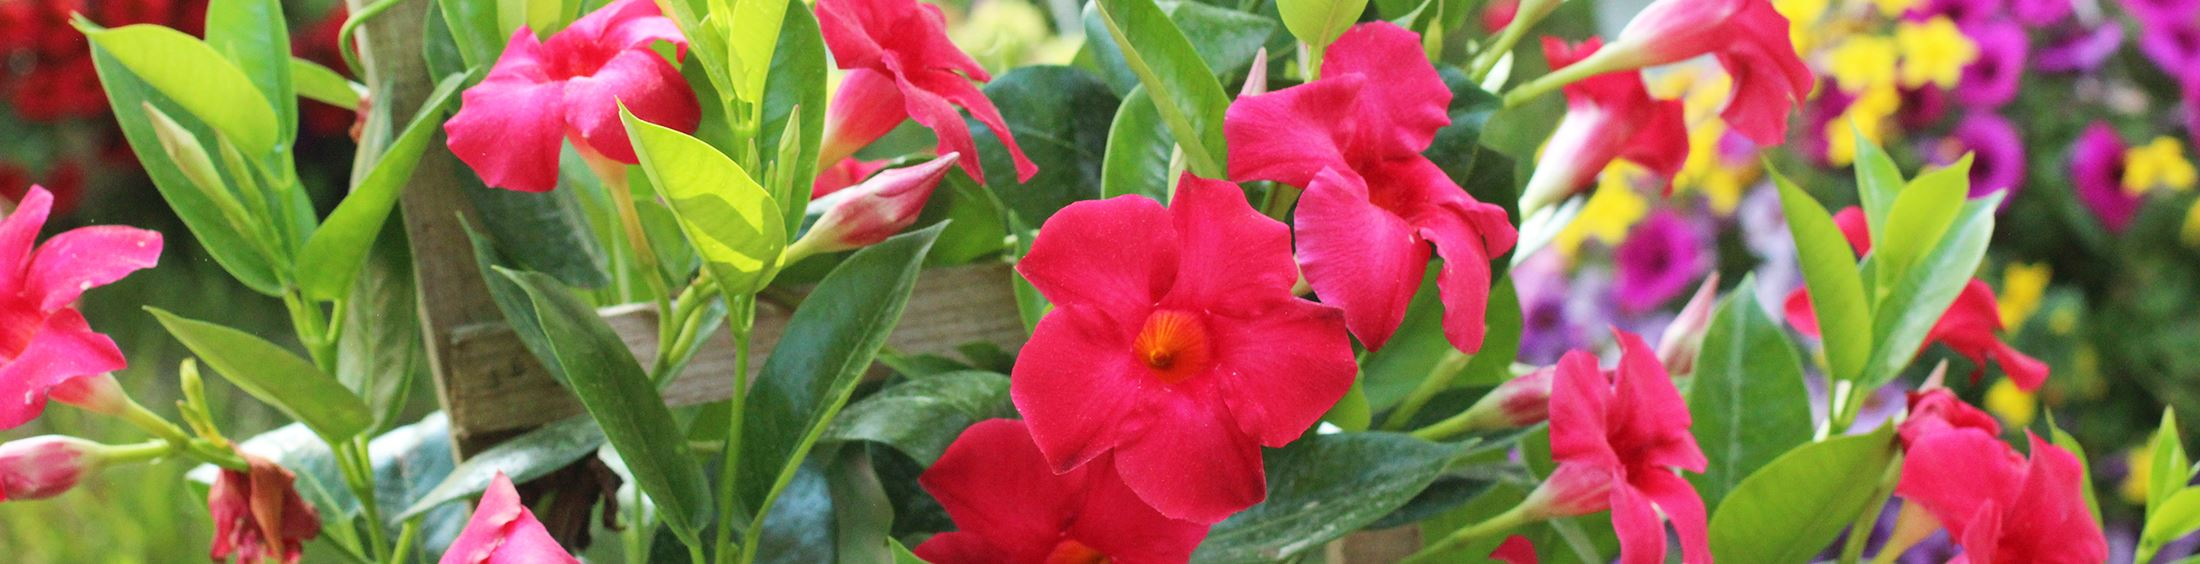 mandevilla from cardinals creek for sale at farmers market